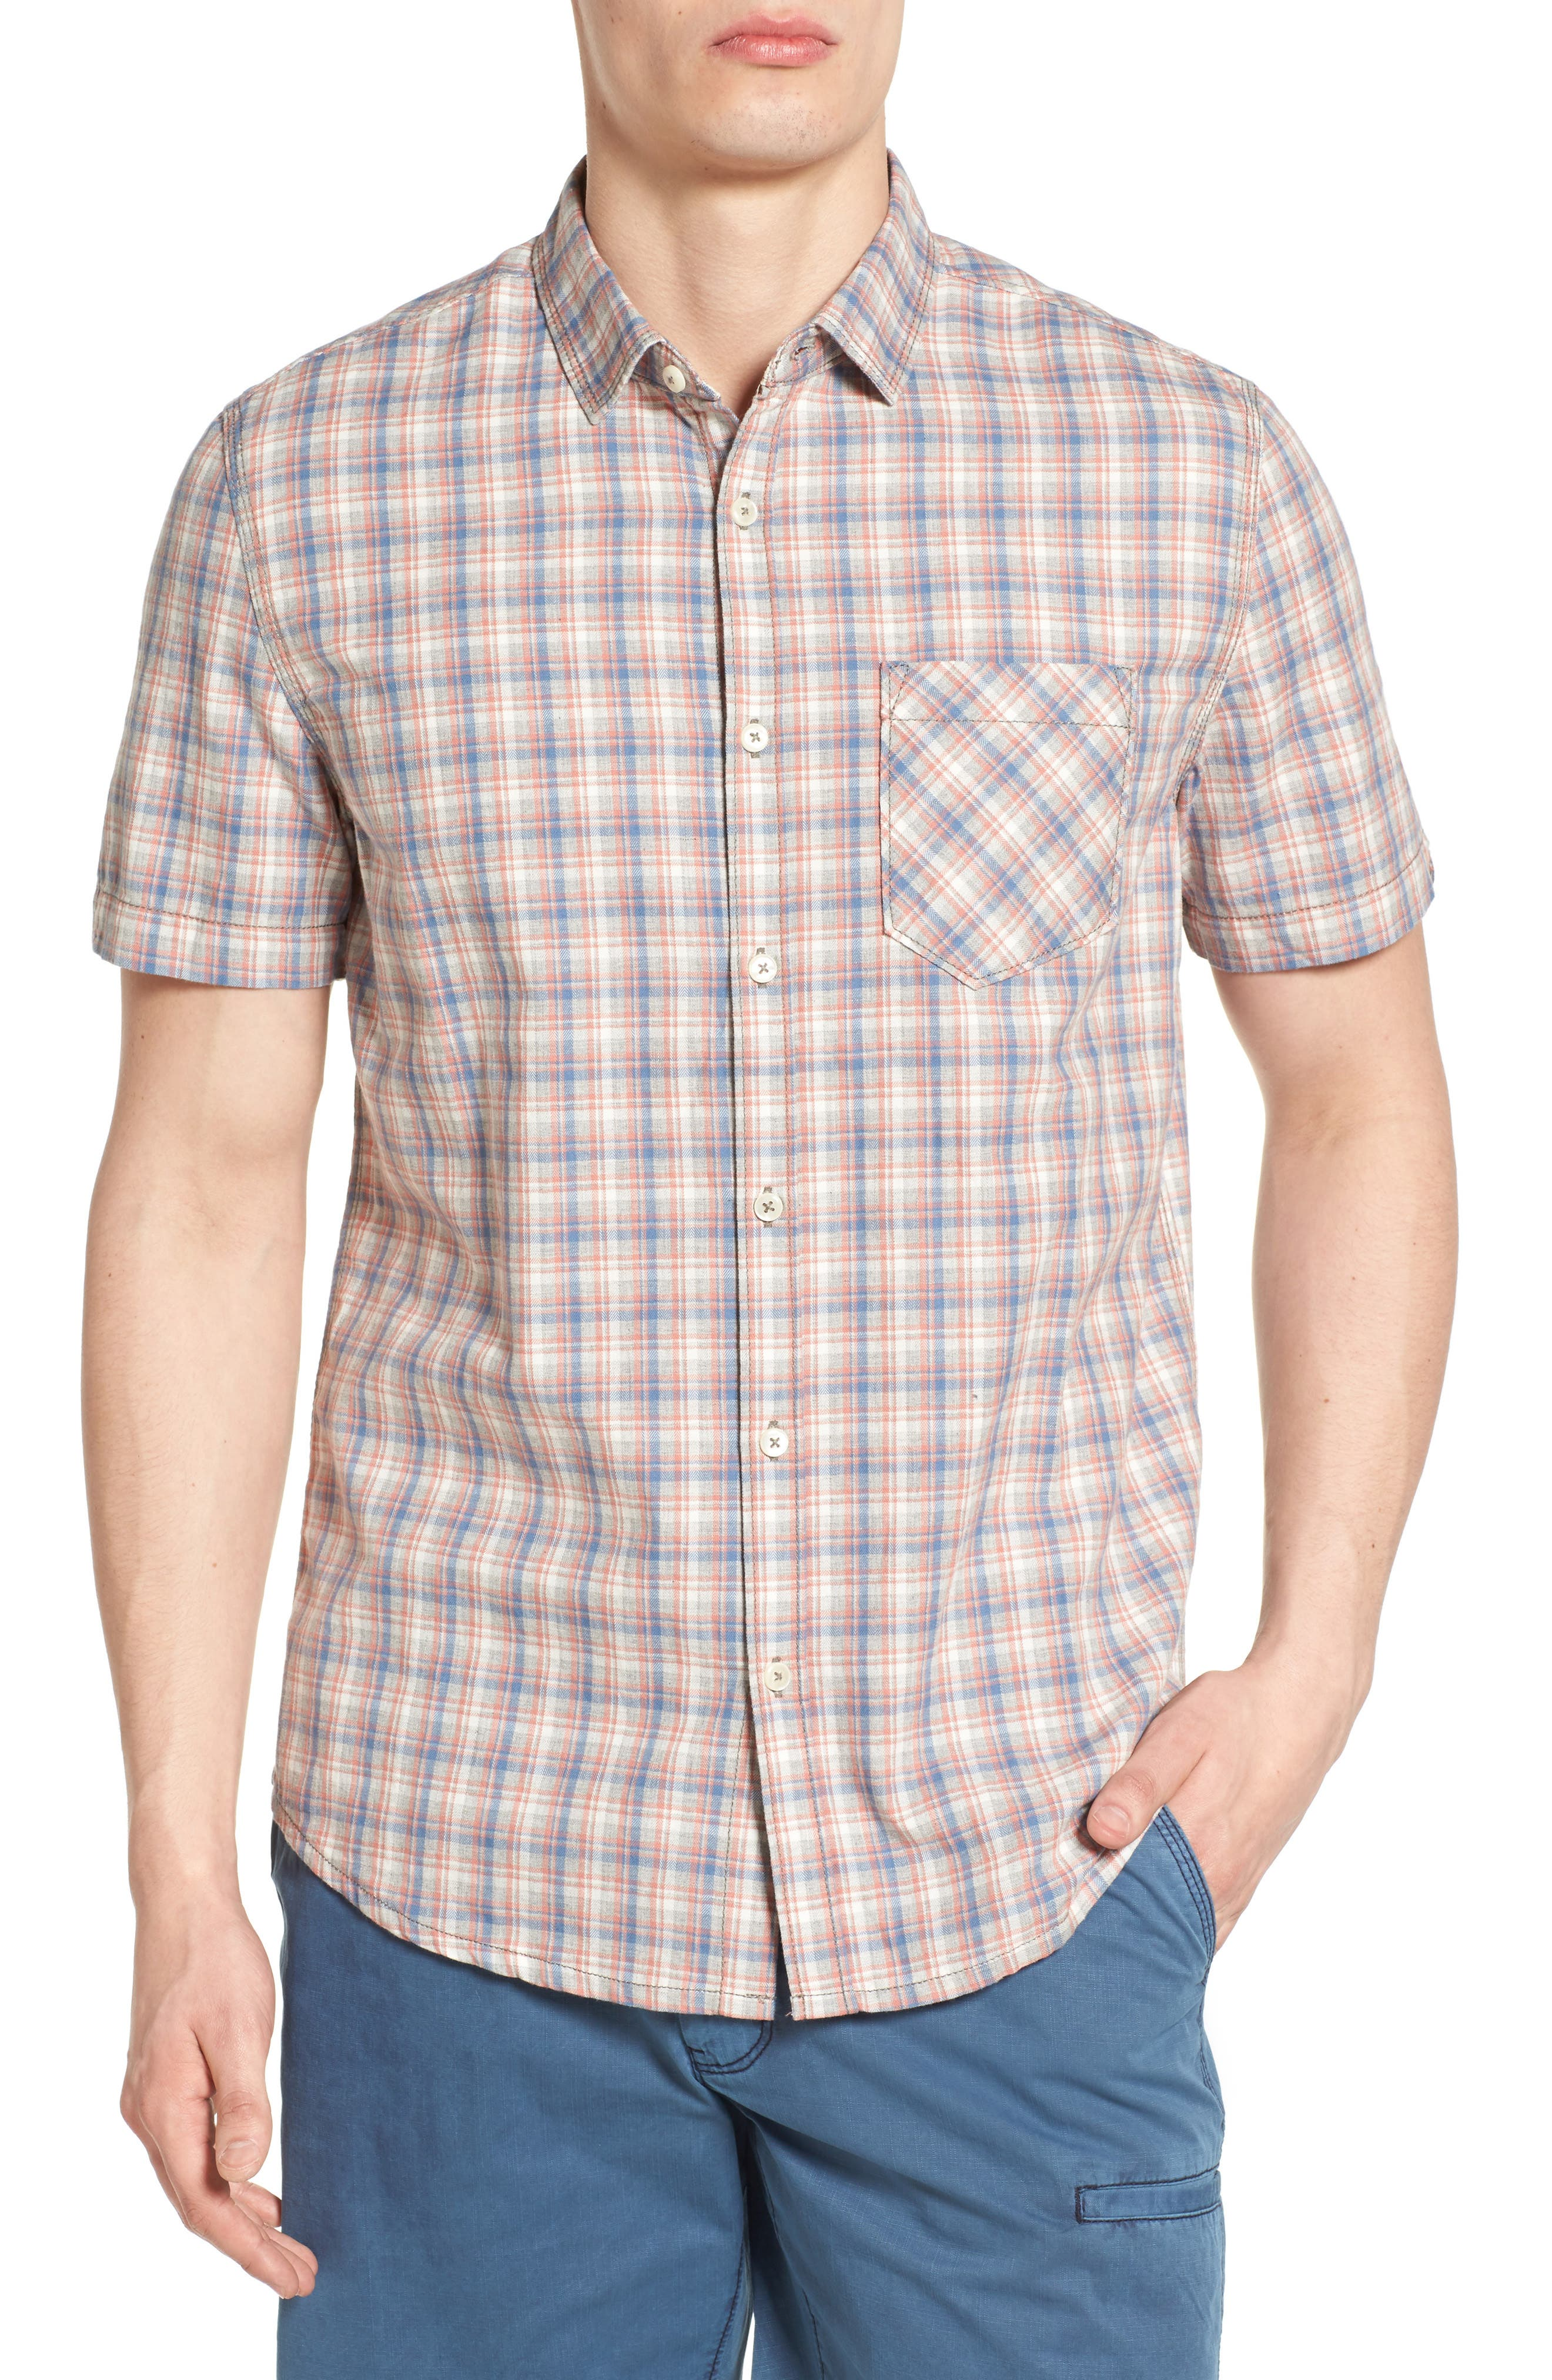 Jeremiah Solana Regular Fit Herringbone Plaid Sport Shirt